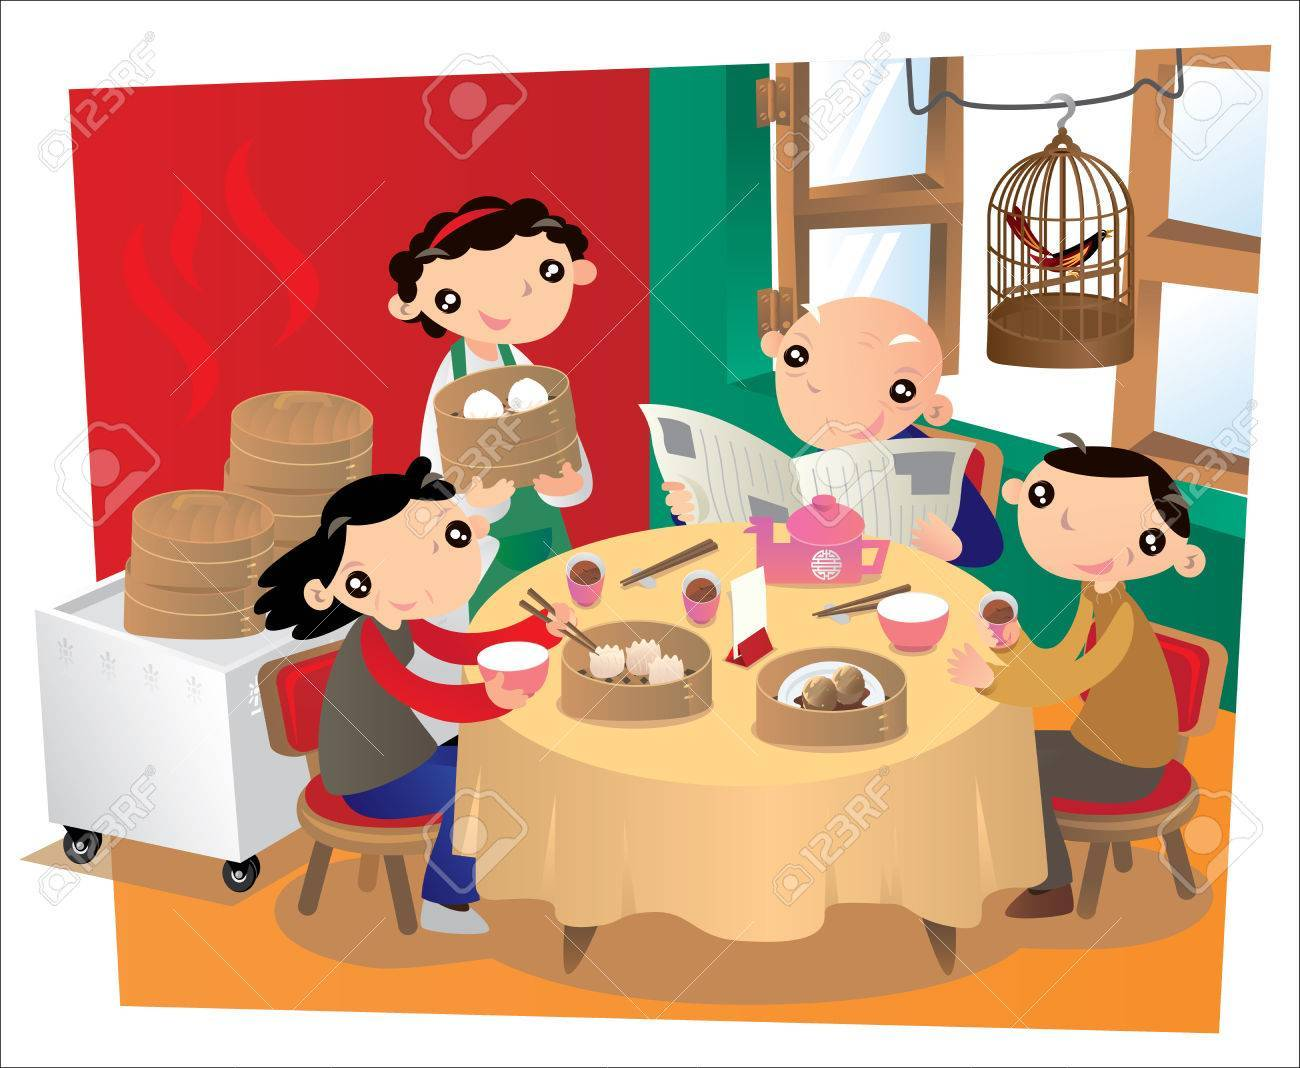 Chinese restaurant clipart 9 » Clipart Portal.